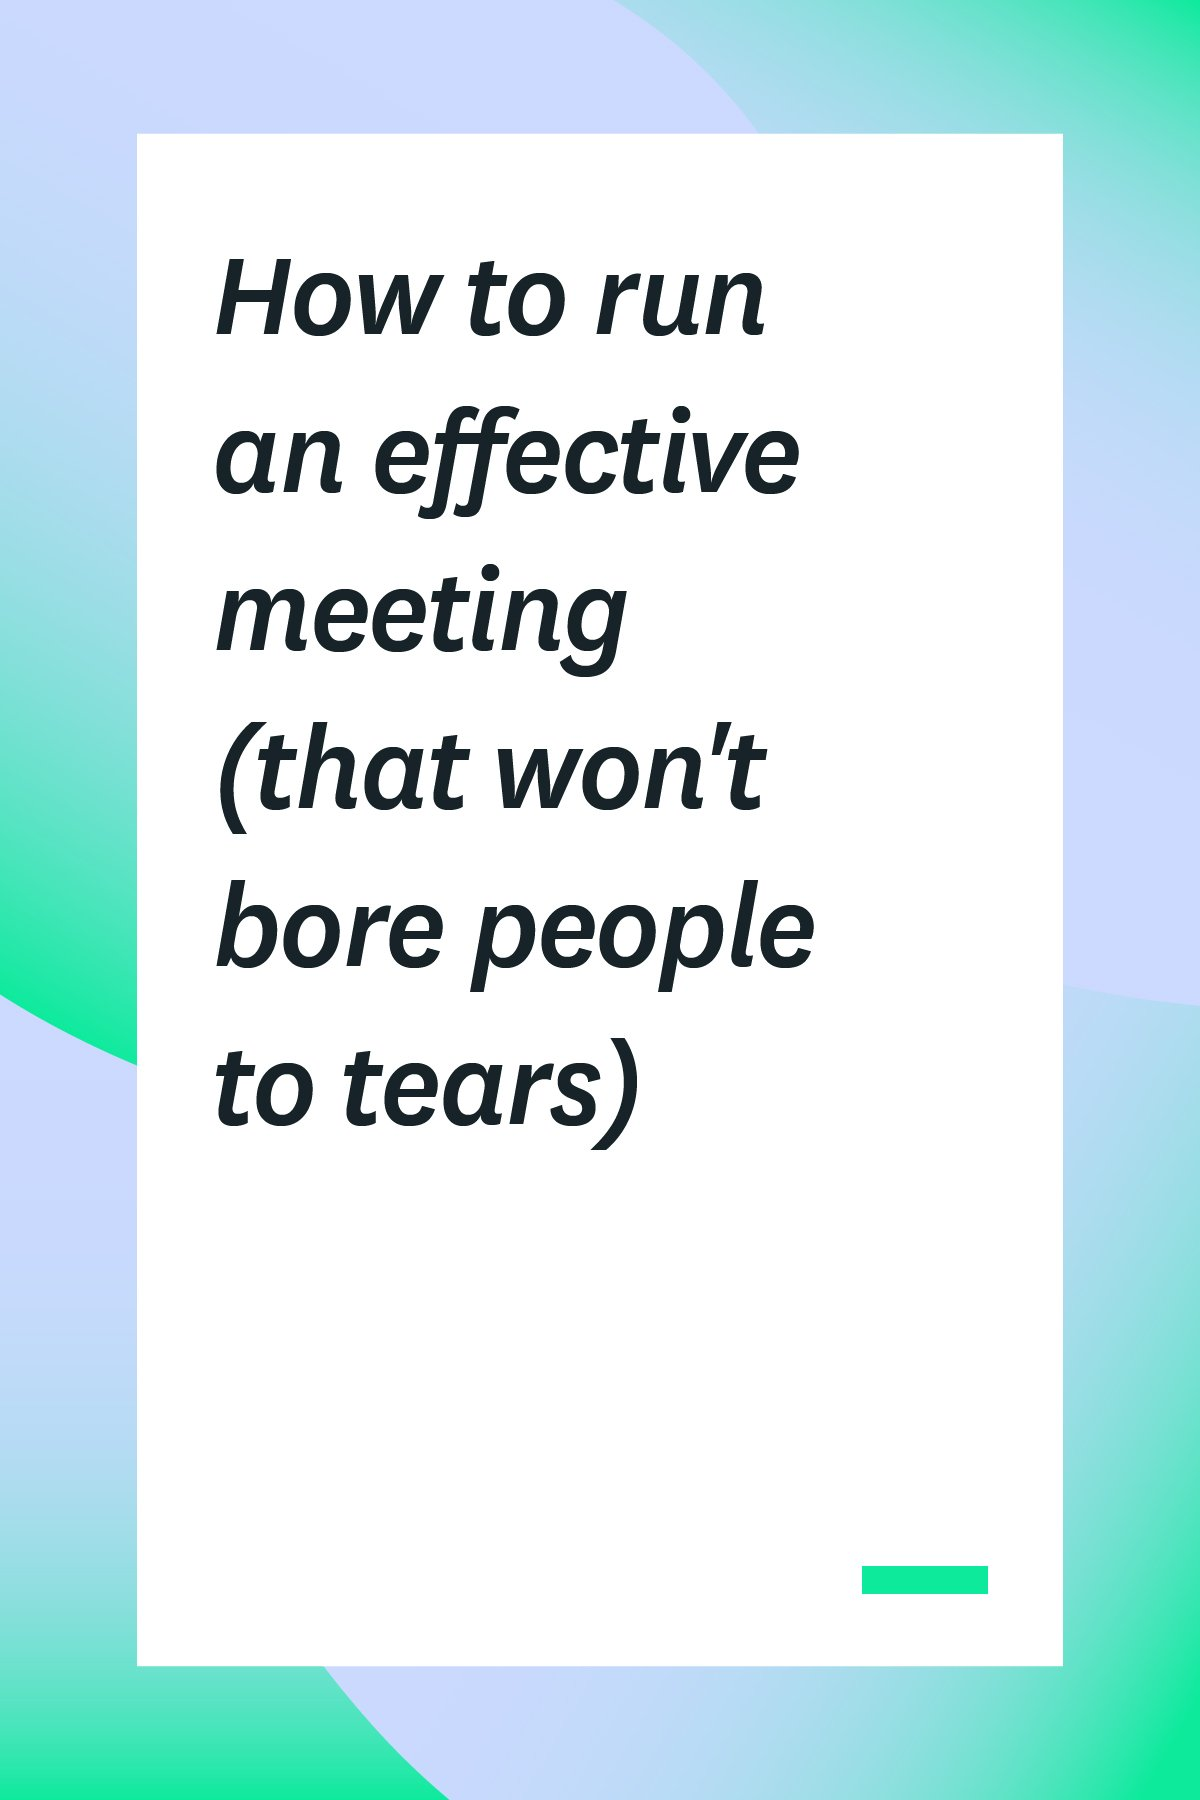 Meetings can be a colossal waste of time. Here's how to run an effective meeting so you can engage your staff, inspire them and produce results.